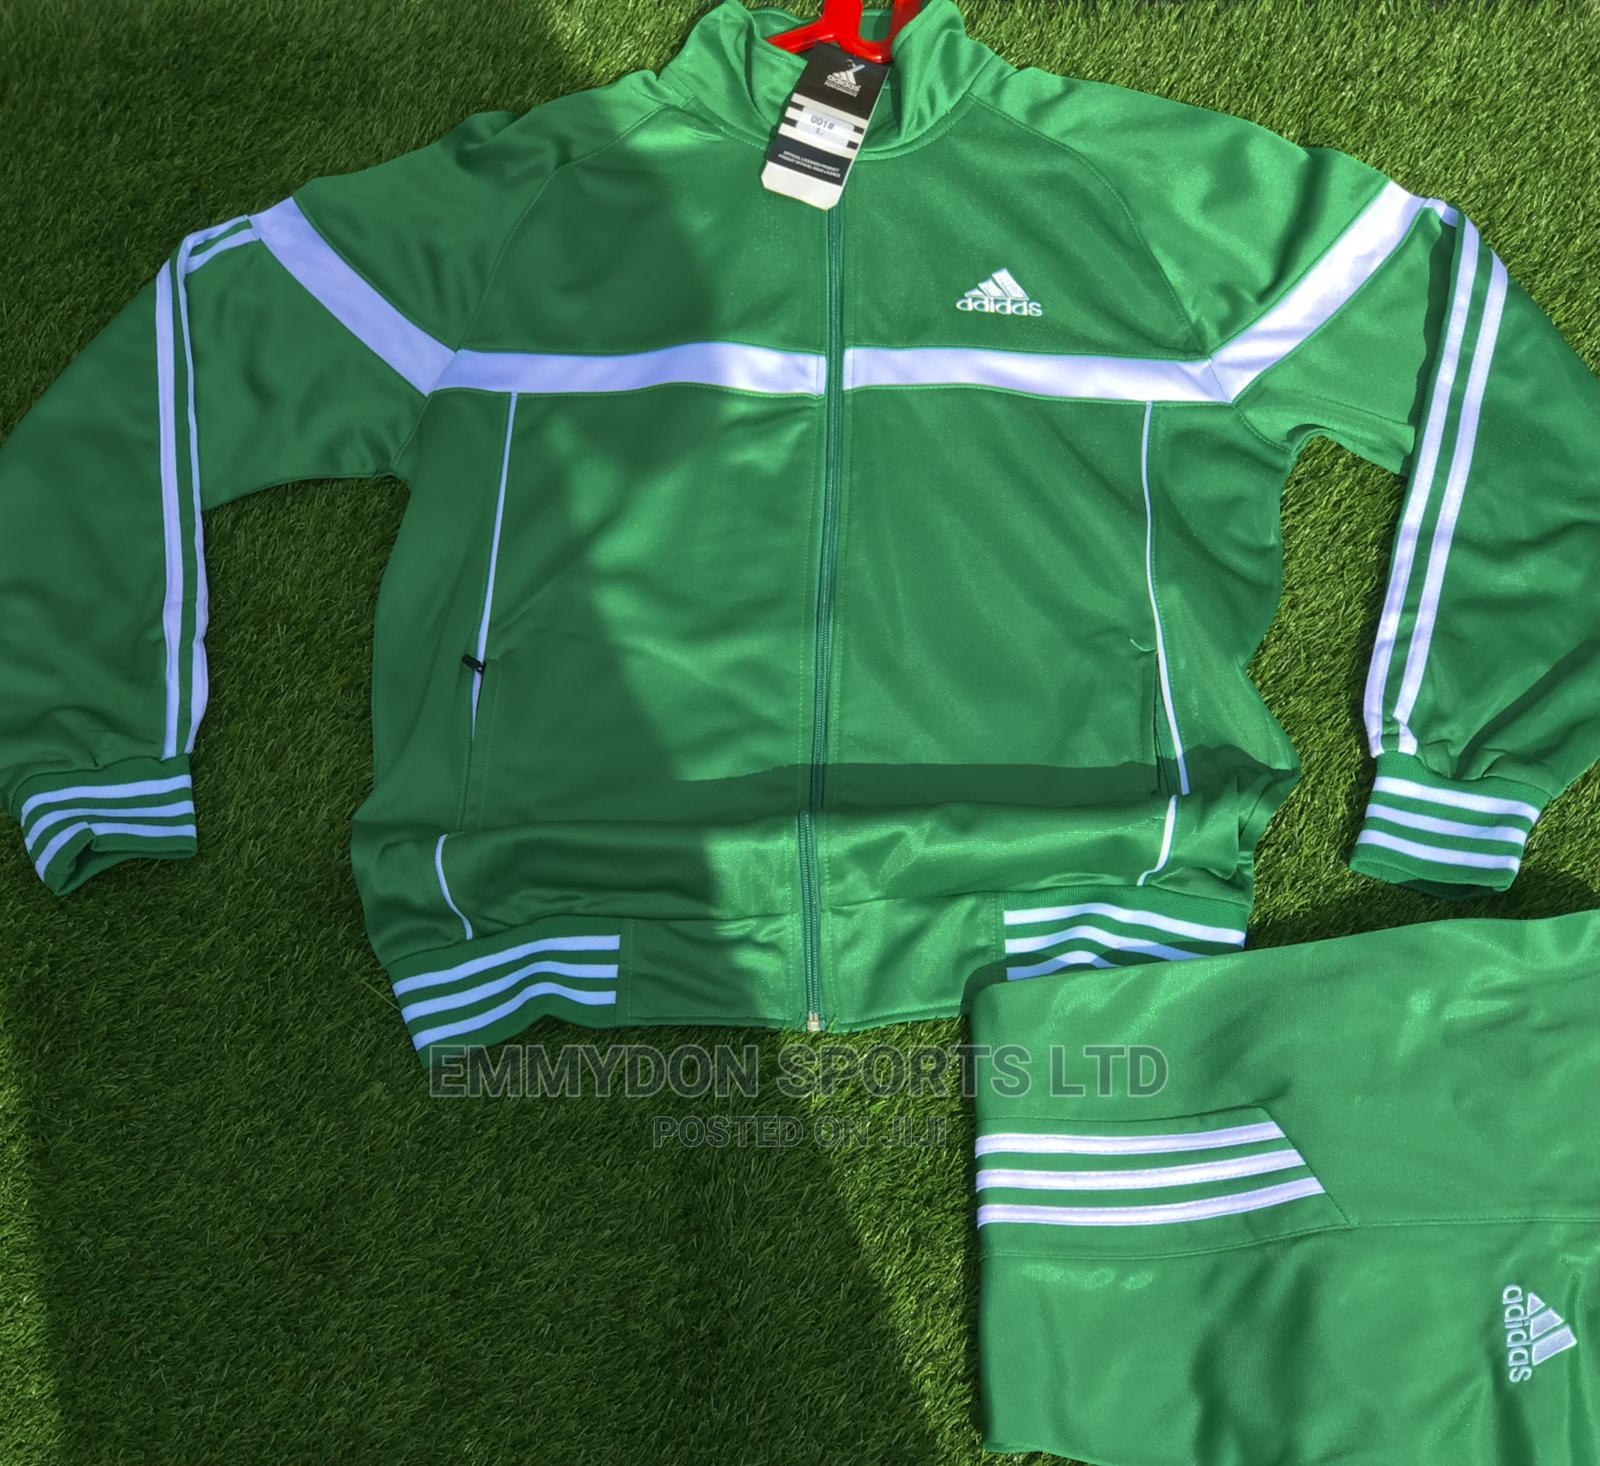 Unisex Adidas Tracksuits | Clothing for sale in Surulere, Lagos State, Nigeria